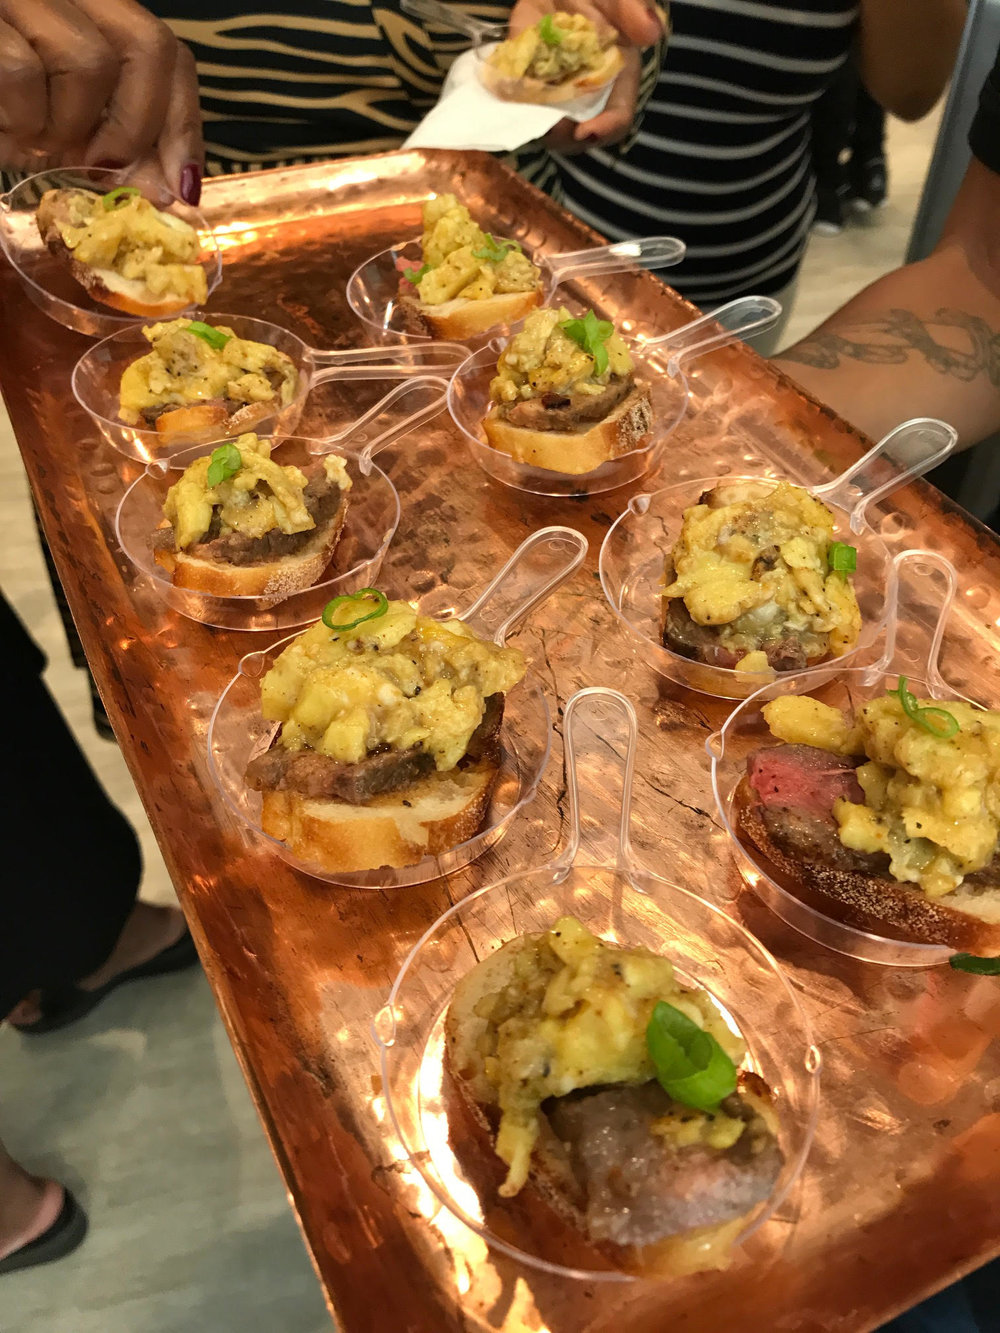 Celebrity Chef J. Jackson's passed hours d' oeuvres were EVERYTHING! Pictured: Mini steak and eggs on  brioche toast